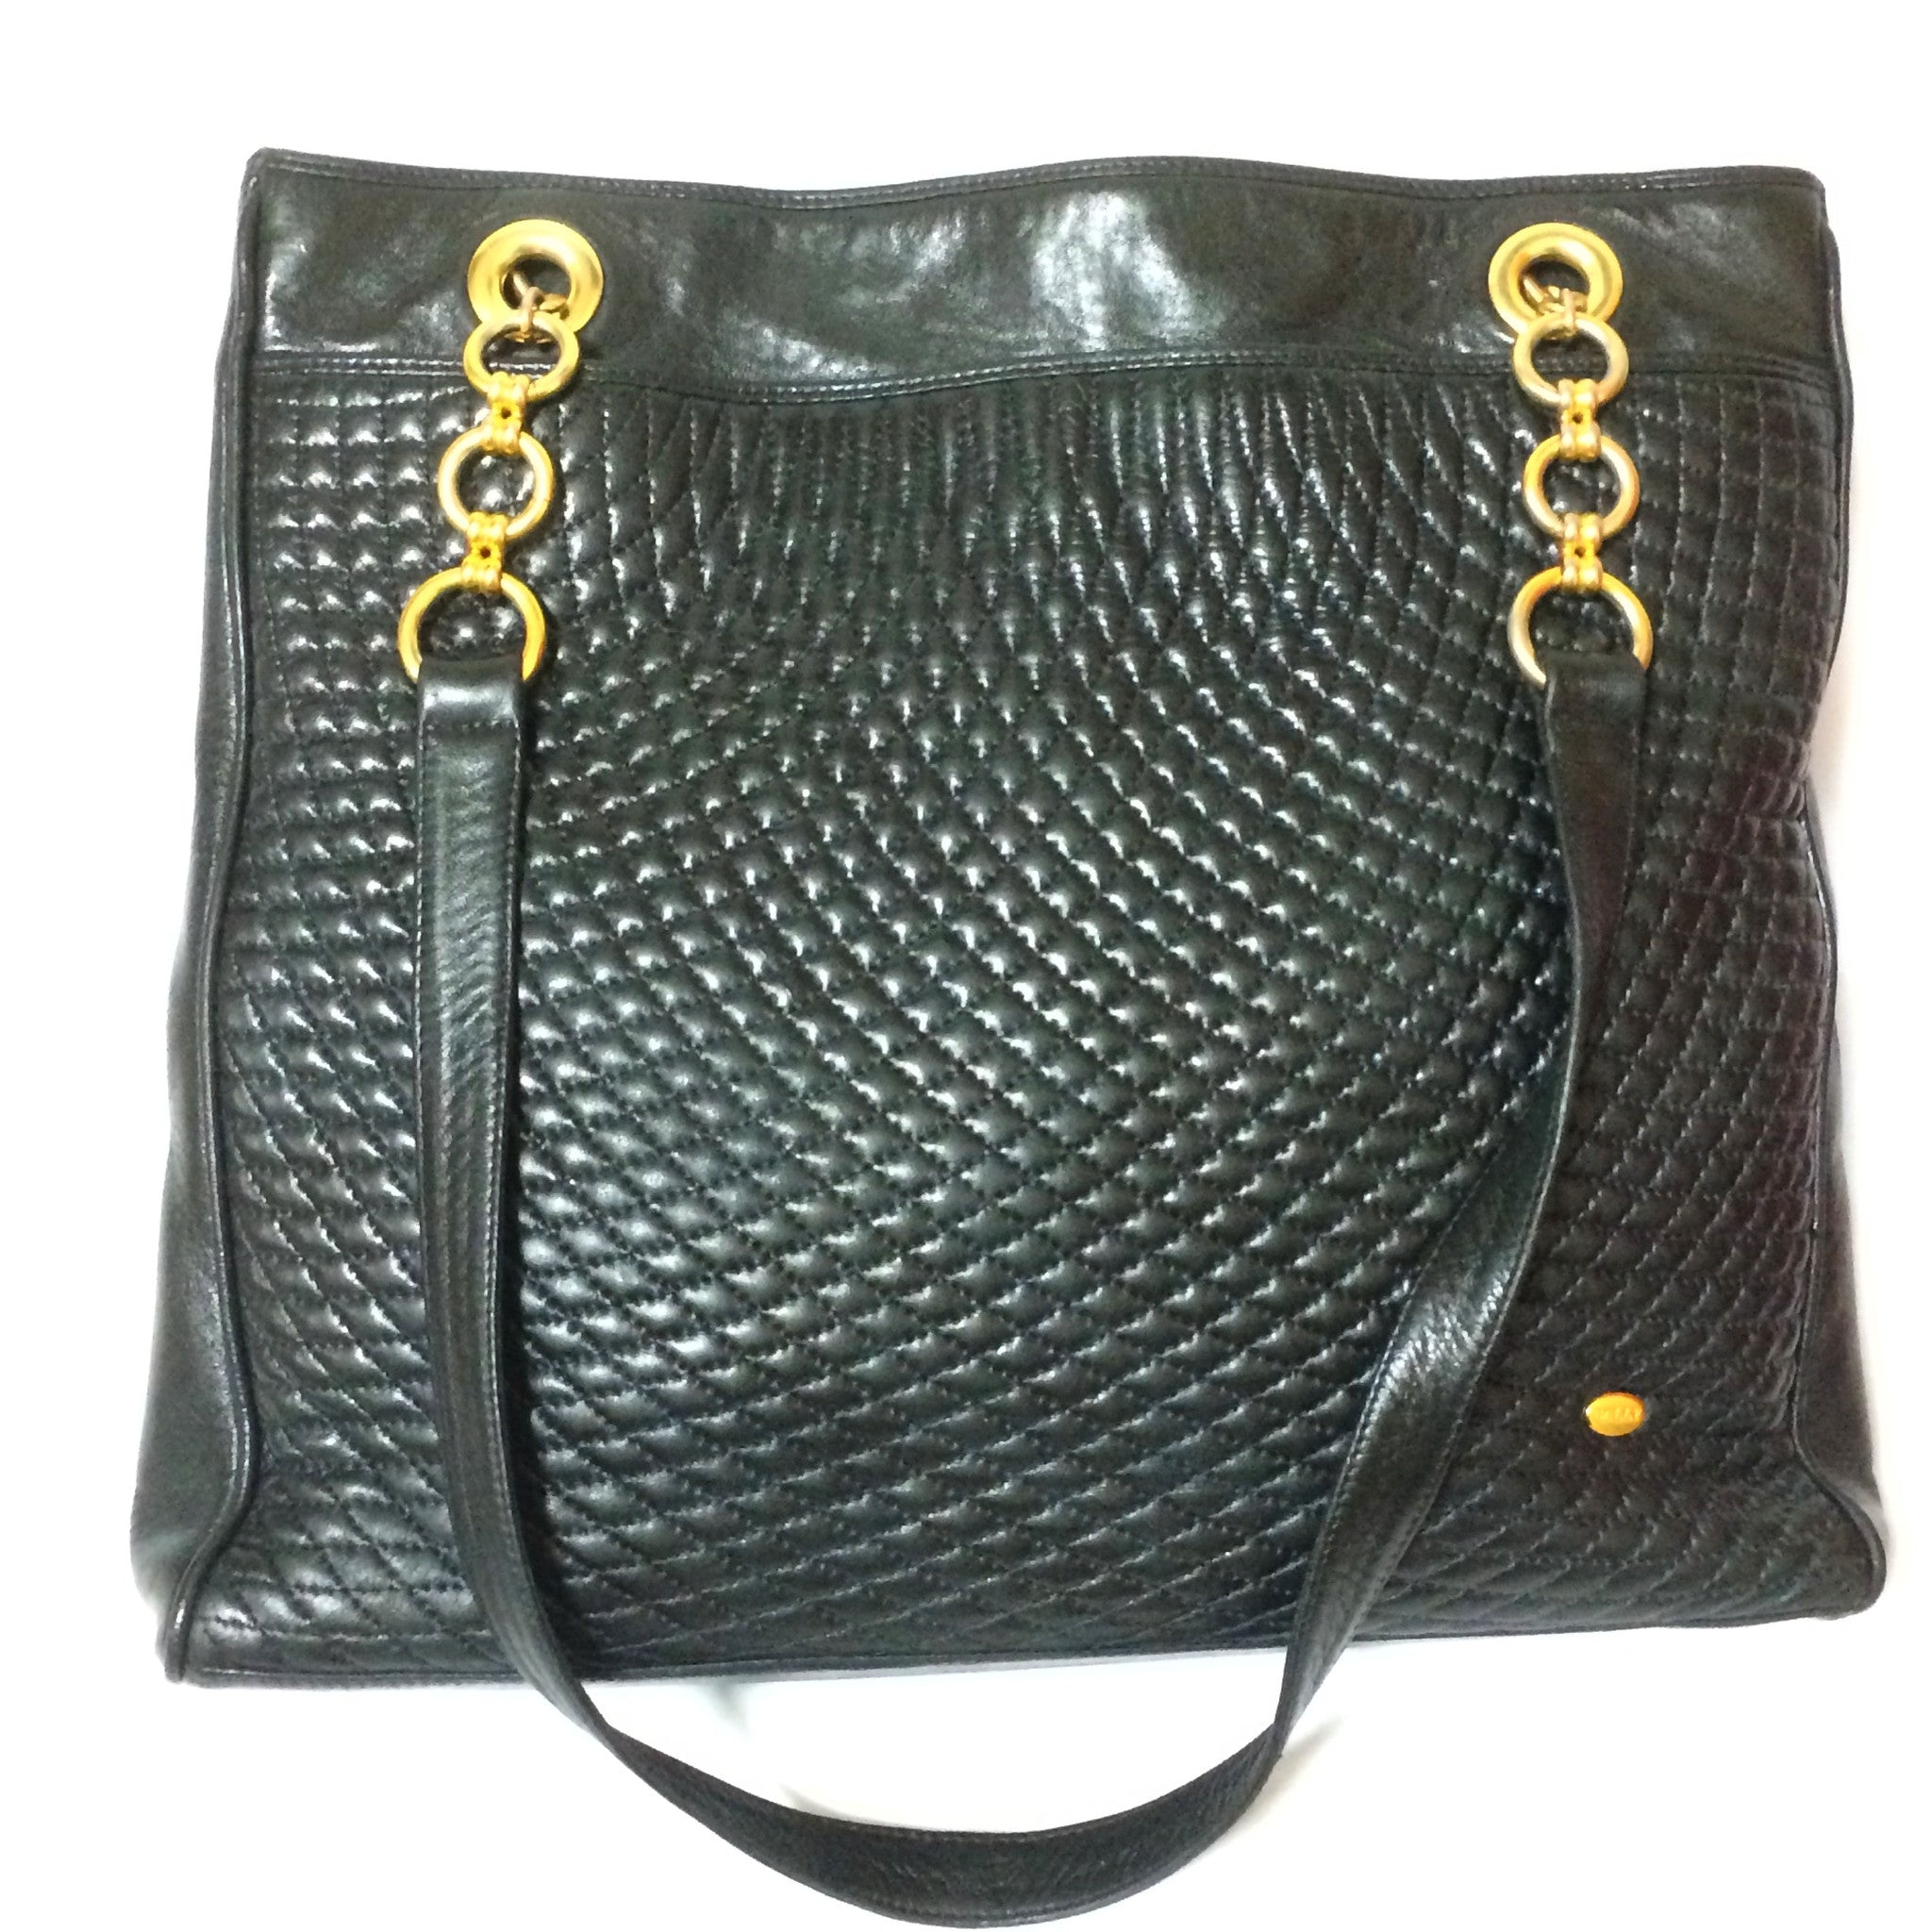 b99491e01fba Vintage Bally classic black quilted leather large shopper tote bag with  golden hoop chains and round